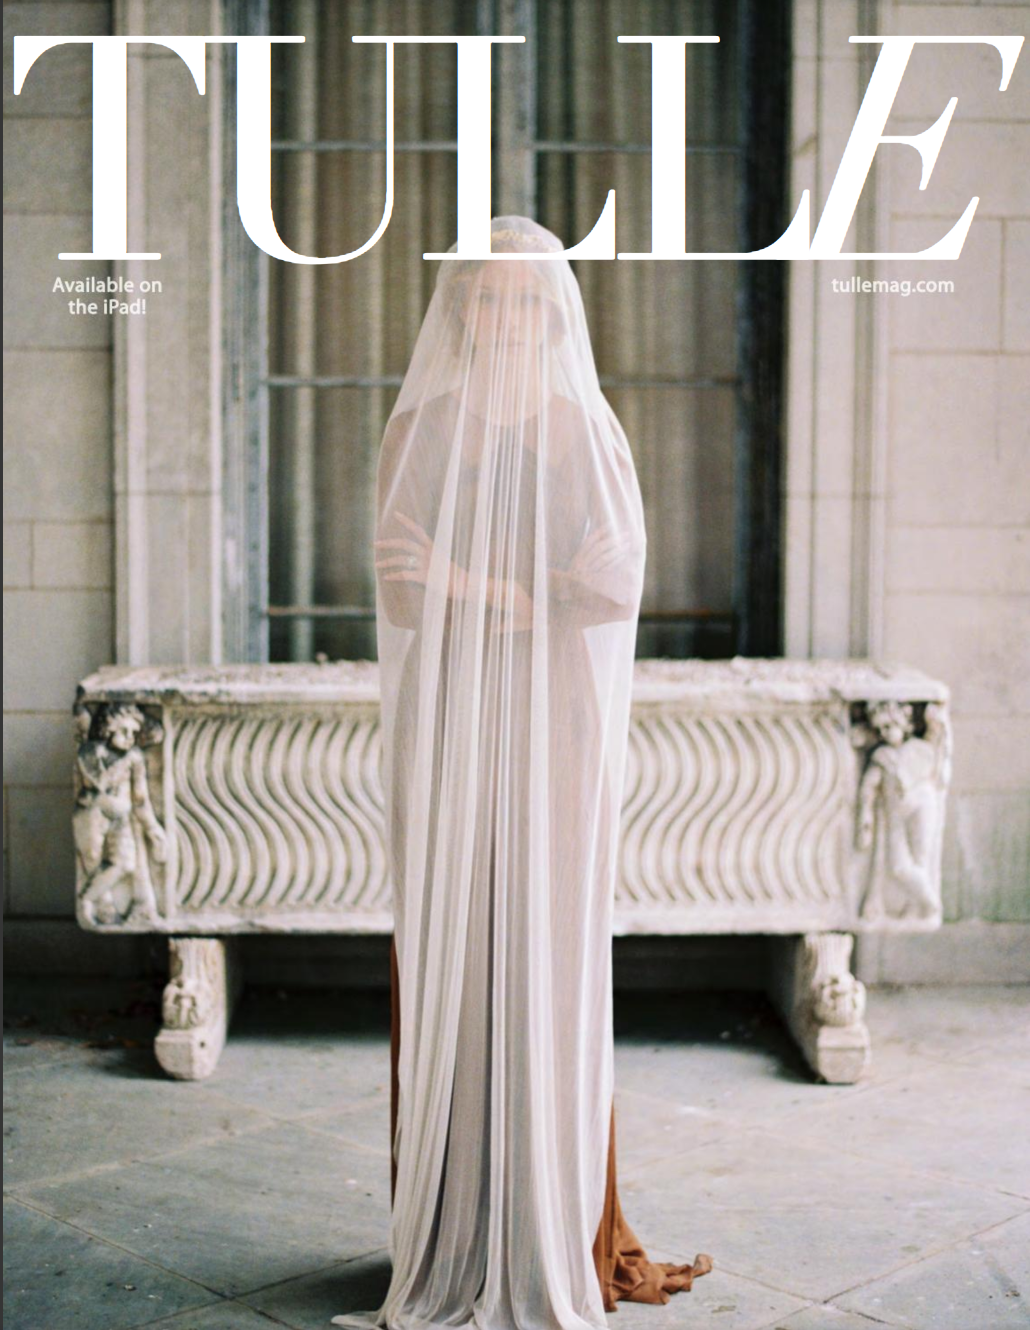 special day for tulle magazine